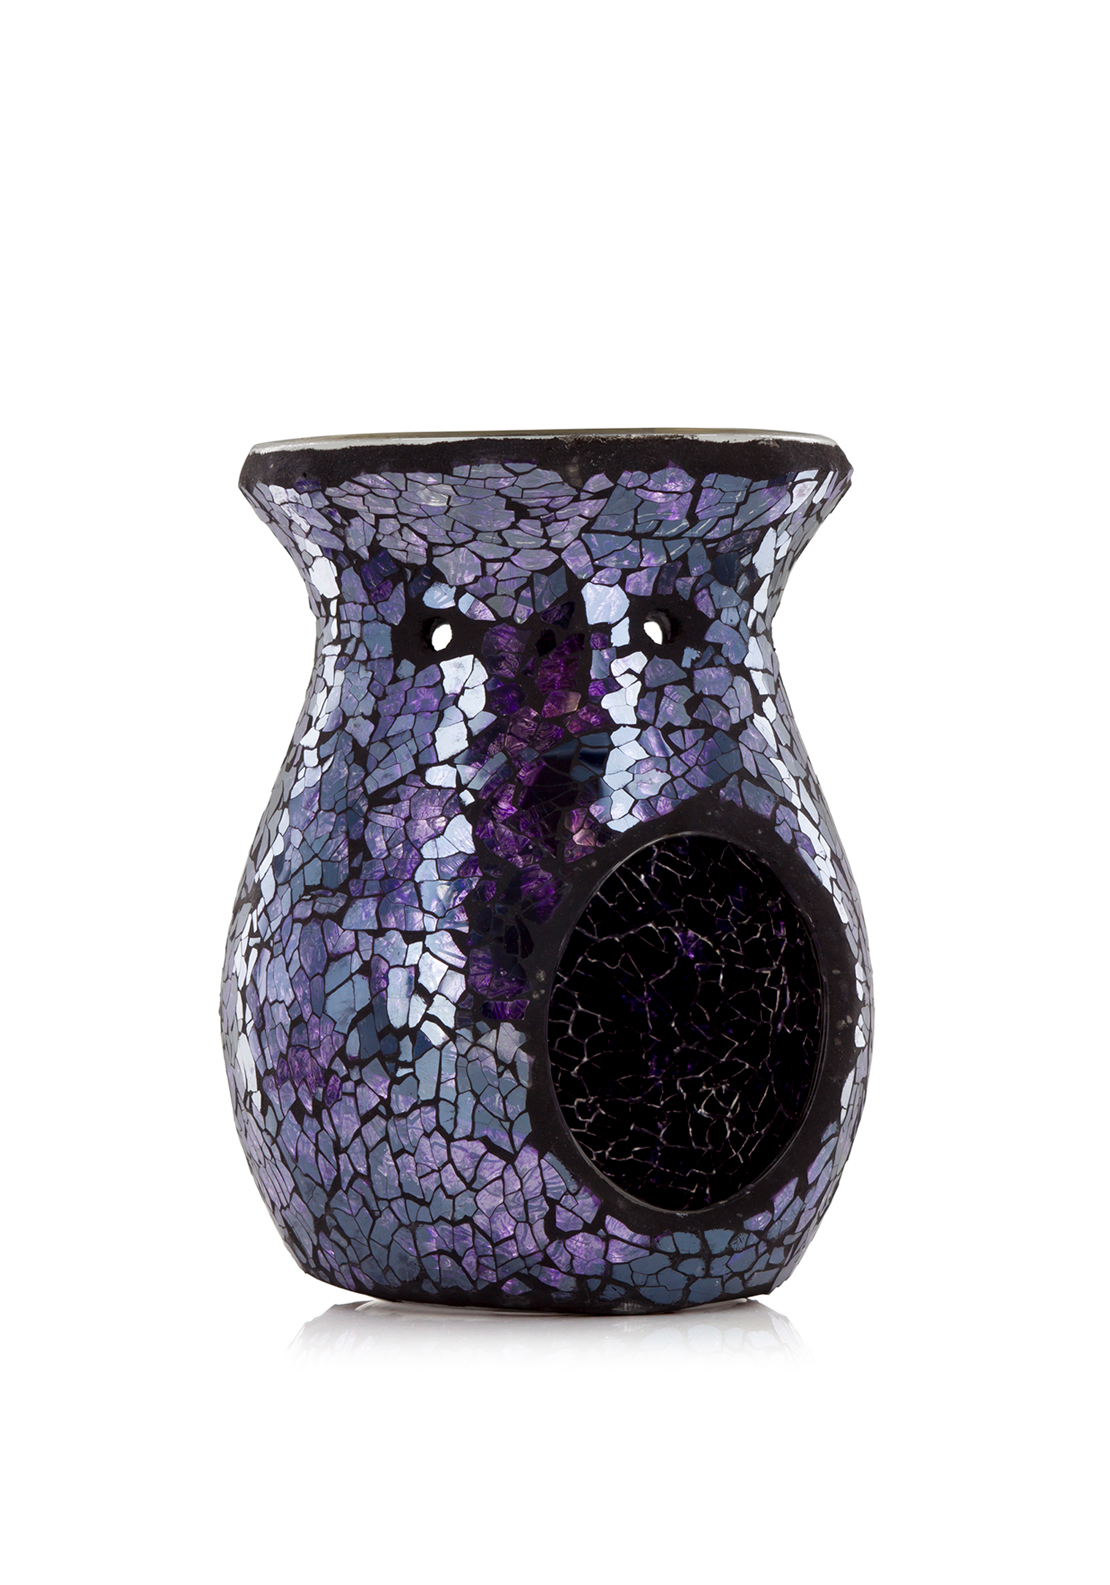 Ashleigh & Burwood Mosaic Classic Oil Burner, Charmed